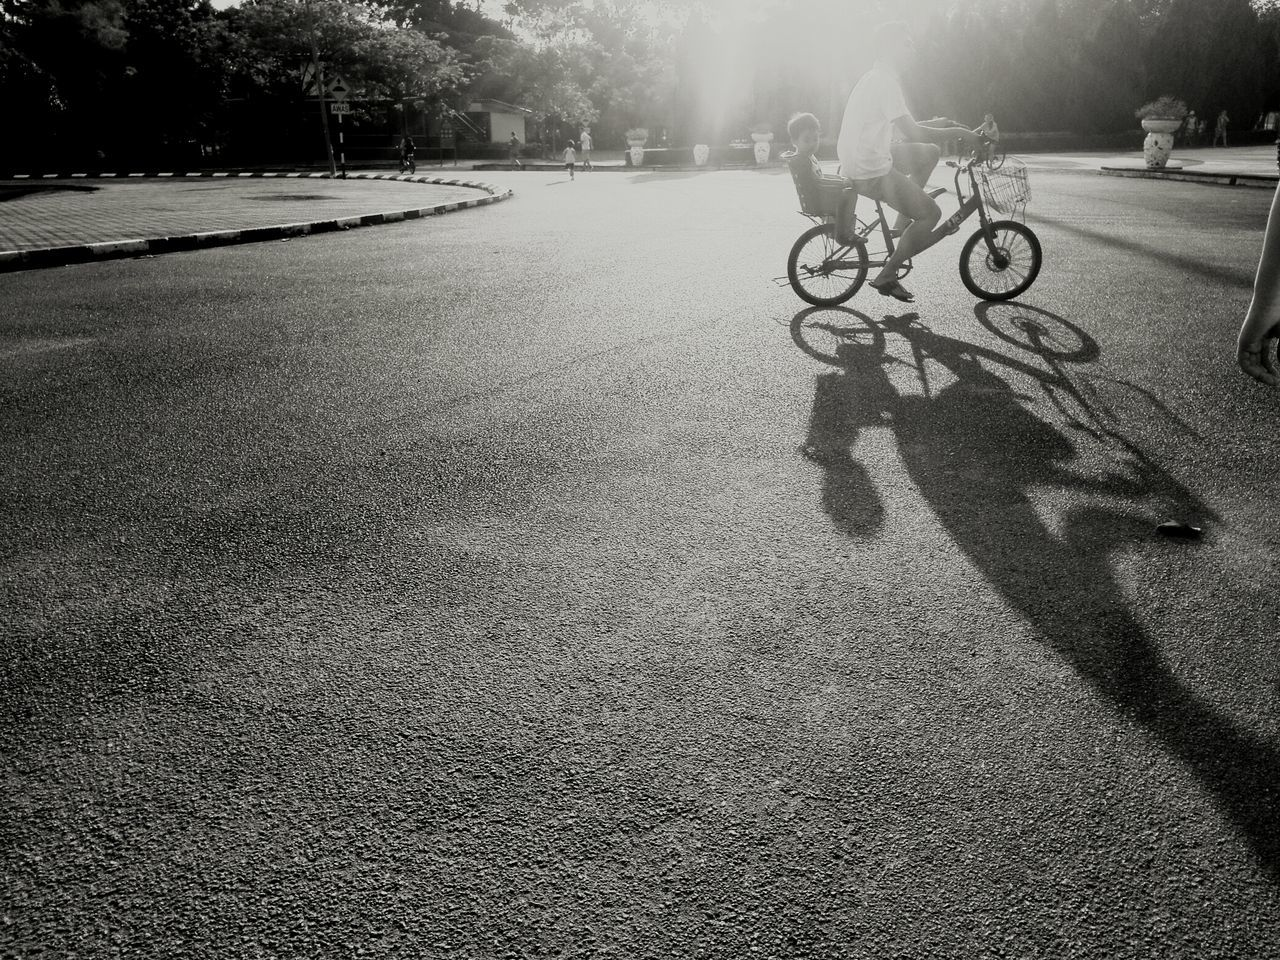 bicycle, transportation, outdoors, shadow, cycling, road, sunlight, riding, real people, land vehicle, day, bicycle rack, one person, tree, nature, people